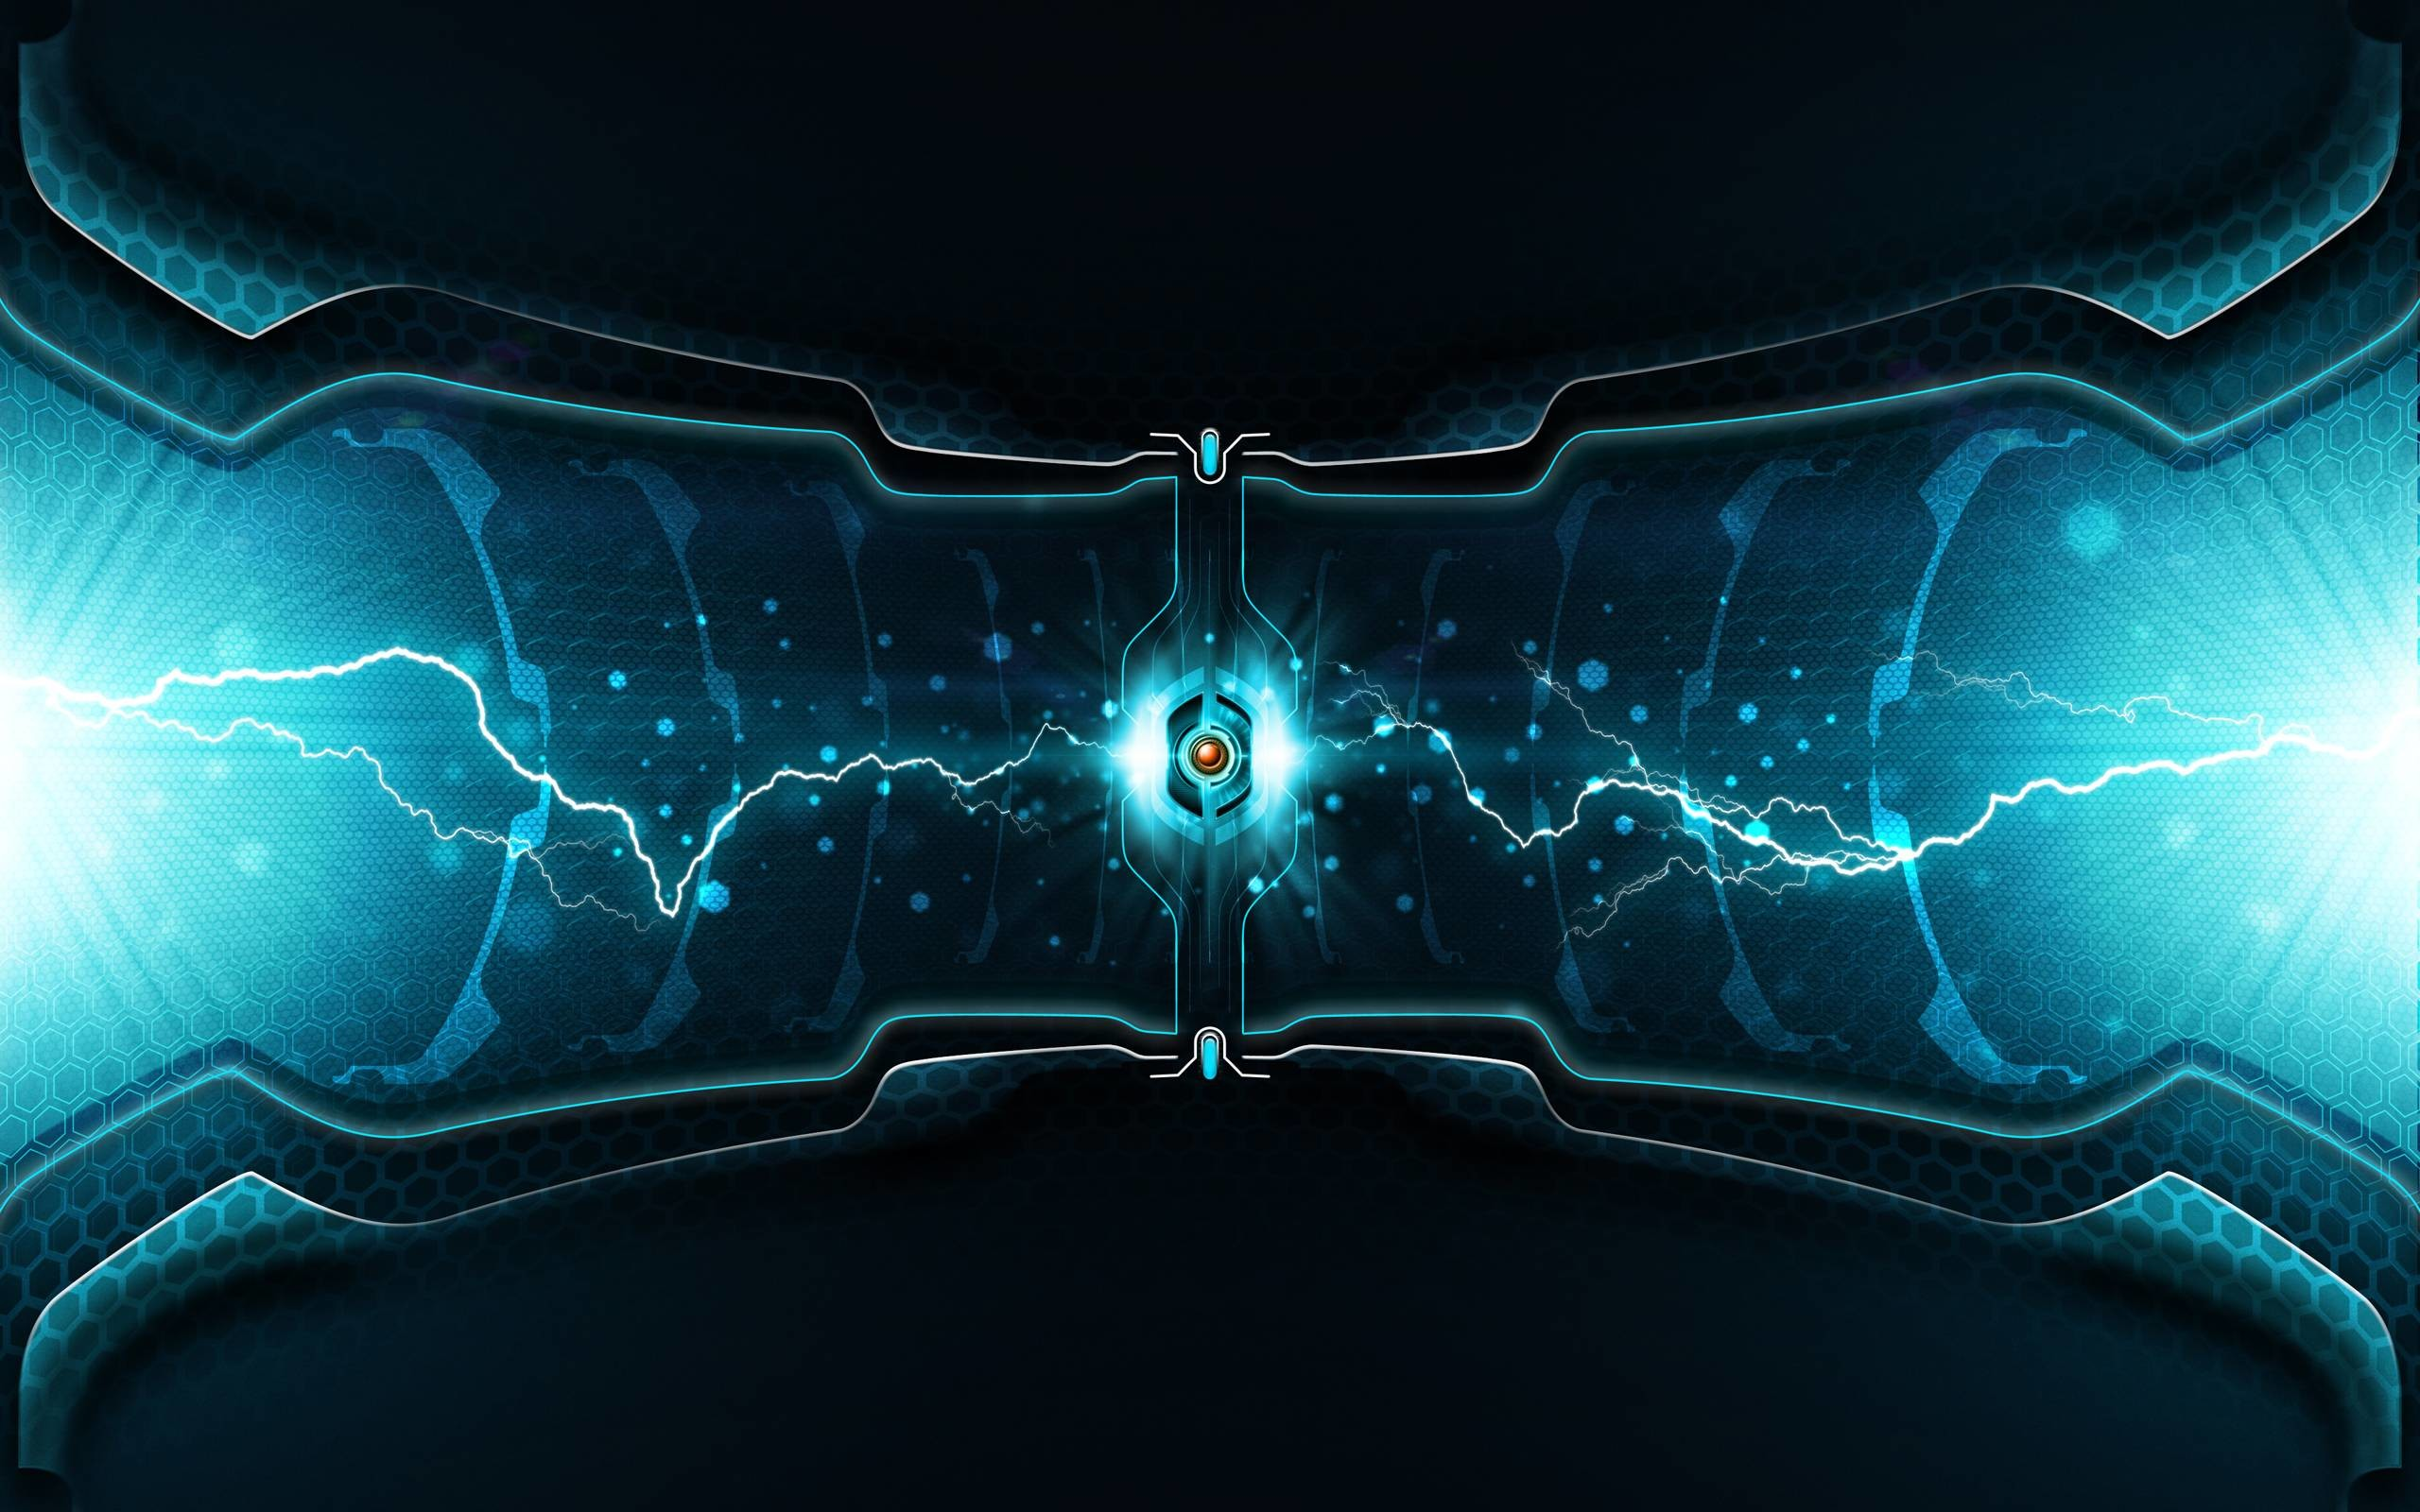 2560x1600 Blue Lightning Wallpaper | HD Wallpapers | Pinterest | Lightning, Wallpaper  and Wallpapers android